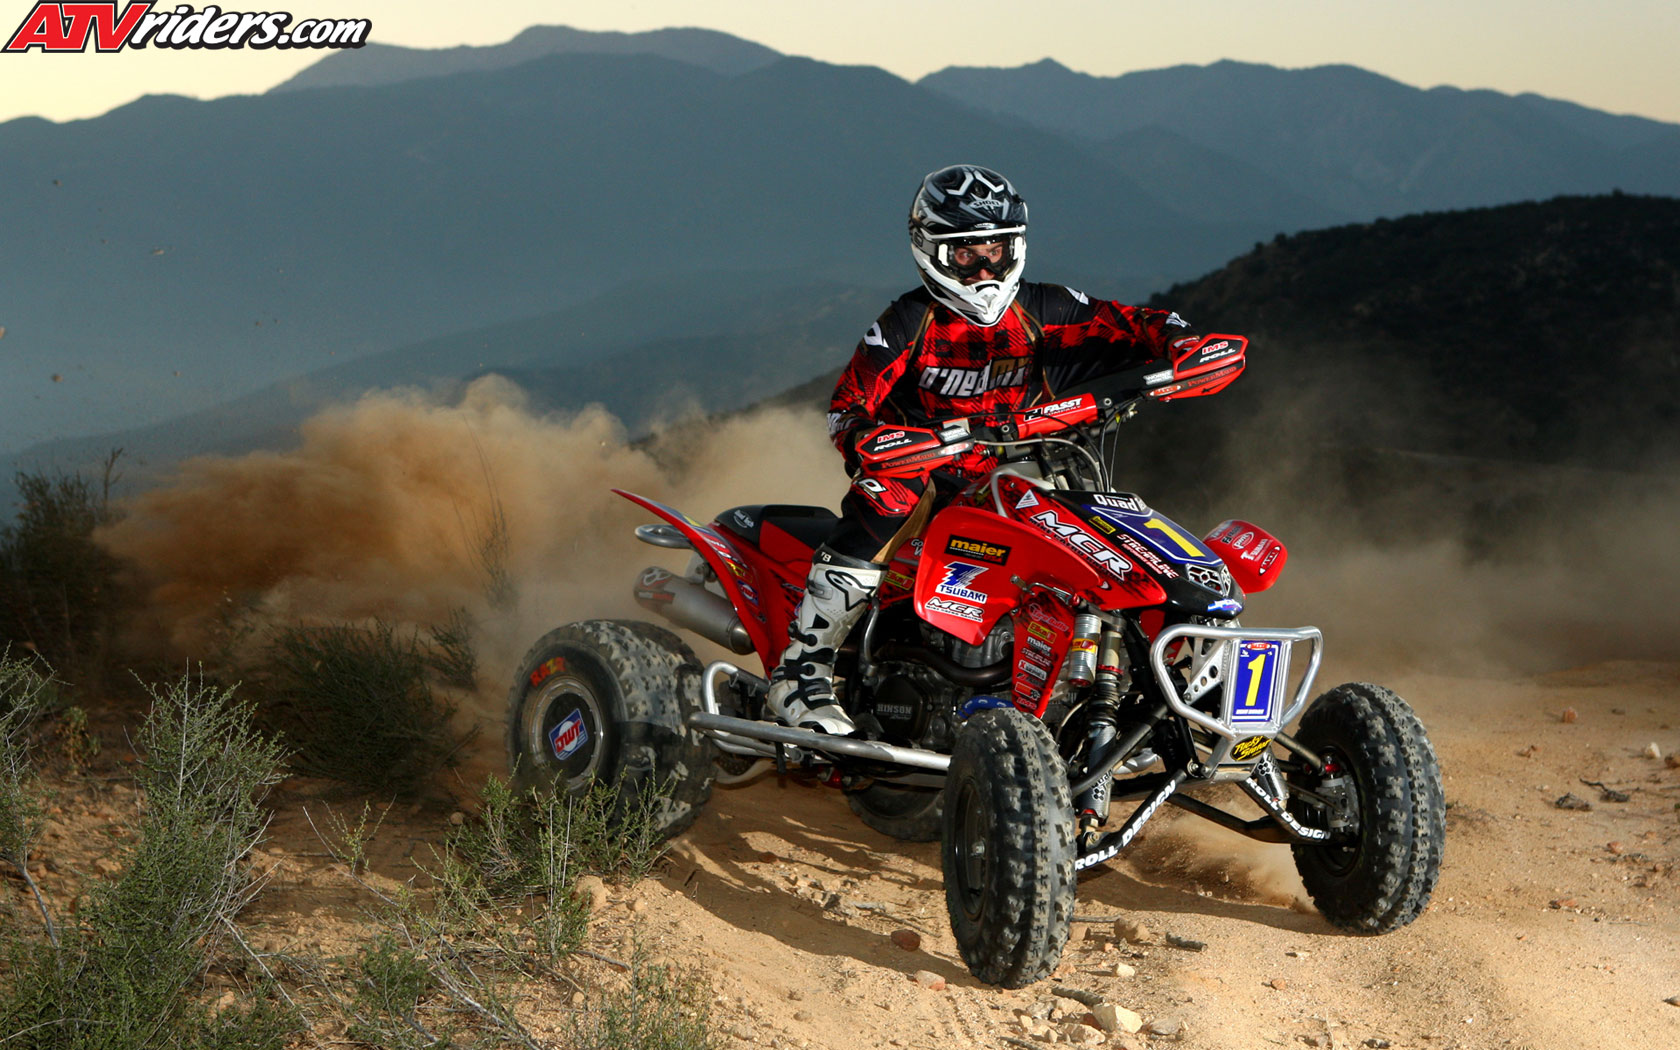 ATV Champion Beau Baron on his Honda TRX450R   Wednesday Wallpapers 1680x1050